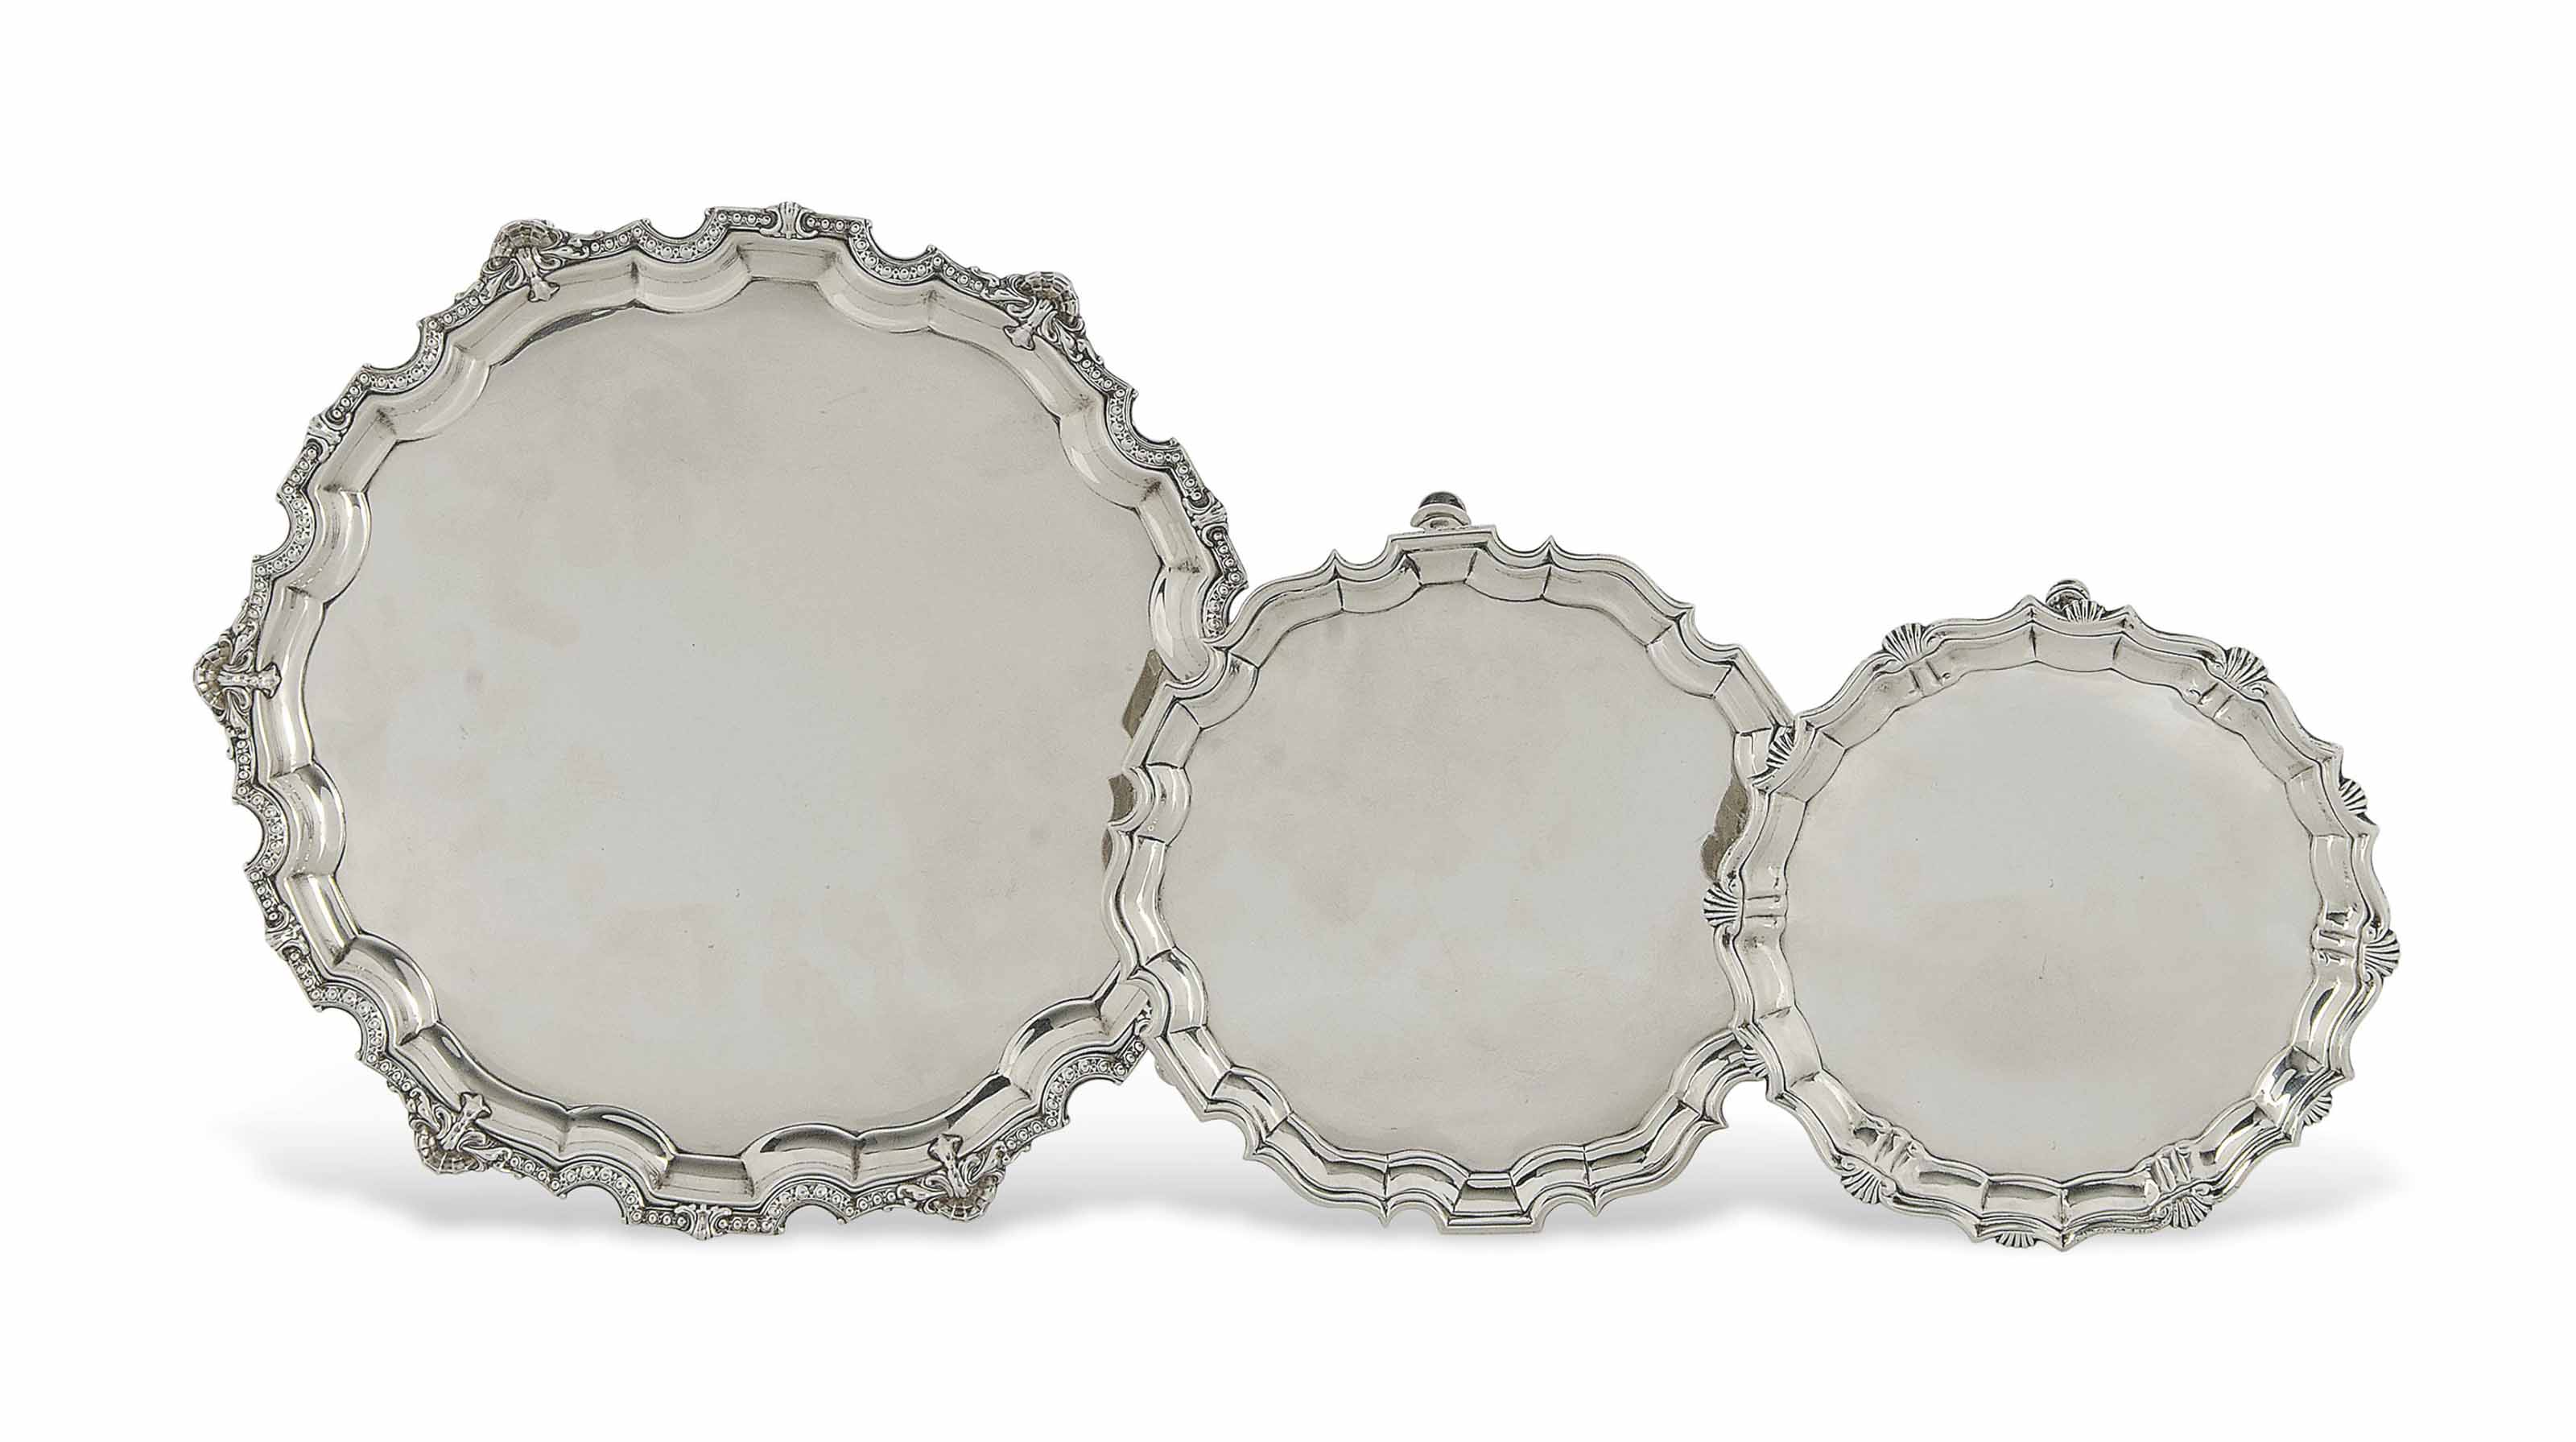 A SMALL GEORGE II SILVER SALVE